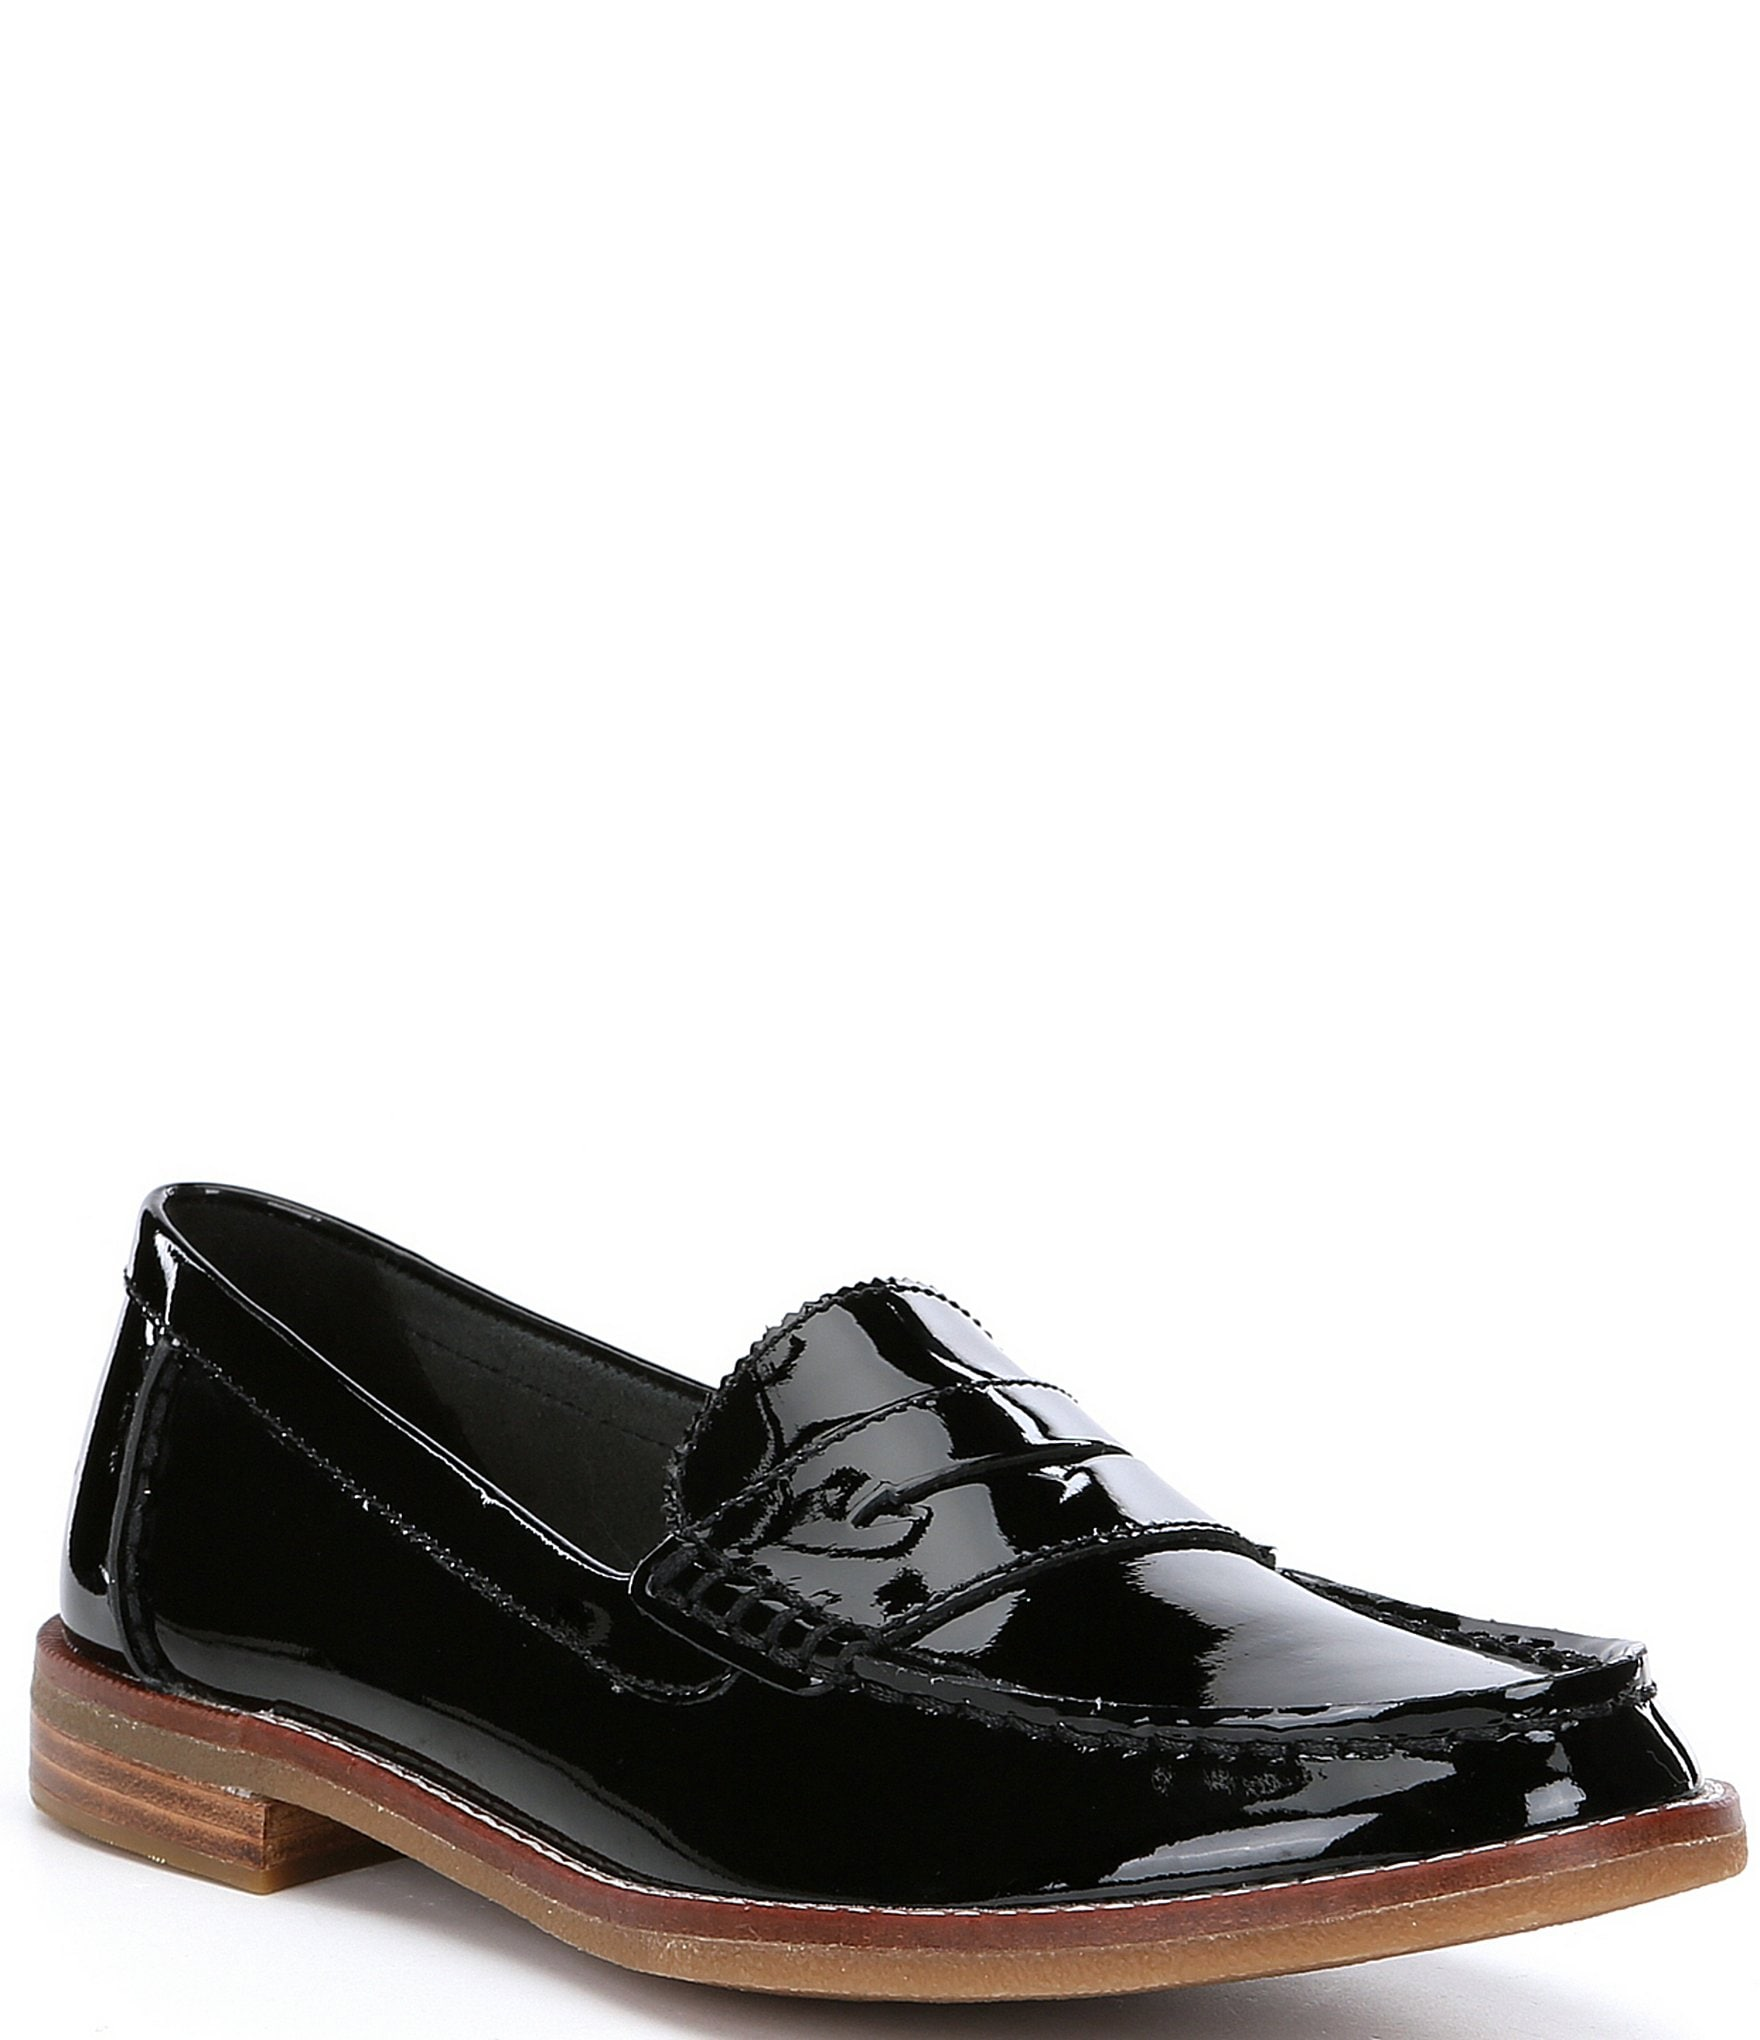 ba9304c9a90 Sperry Women s Seaport Penny Patent Leather Loafers